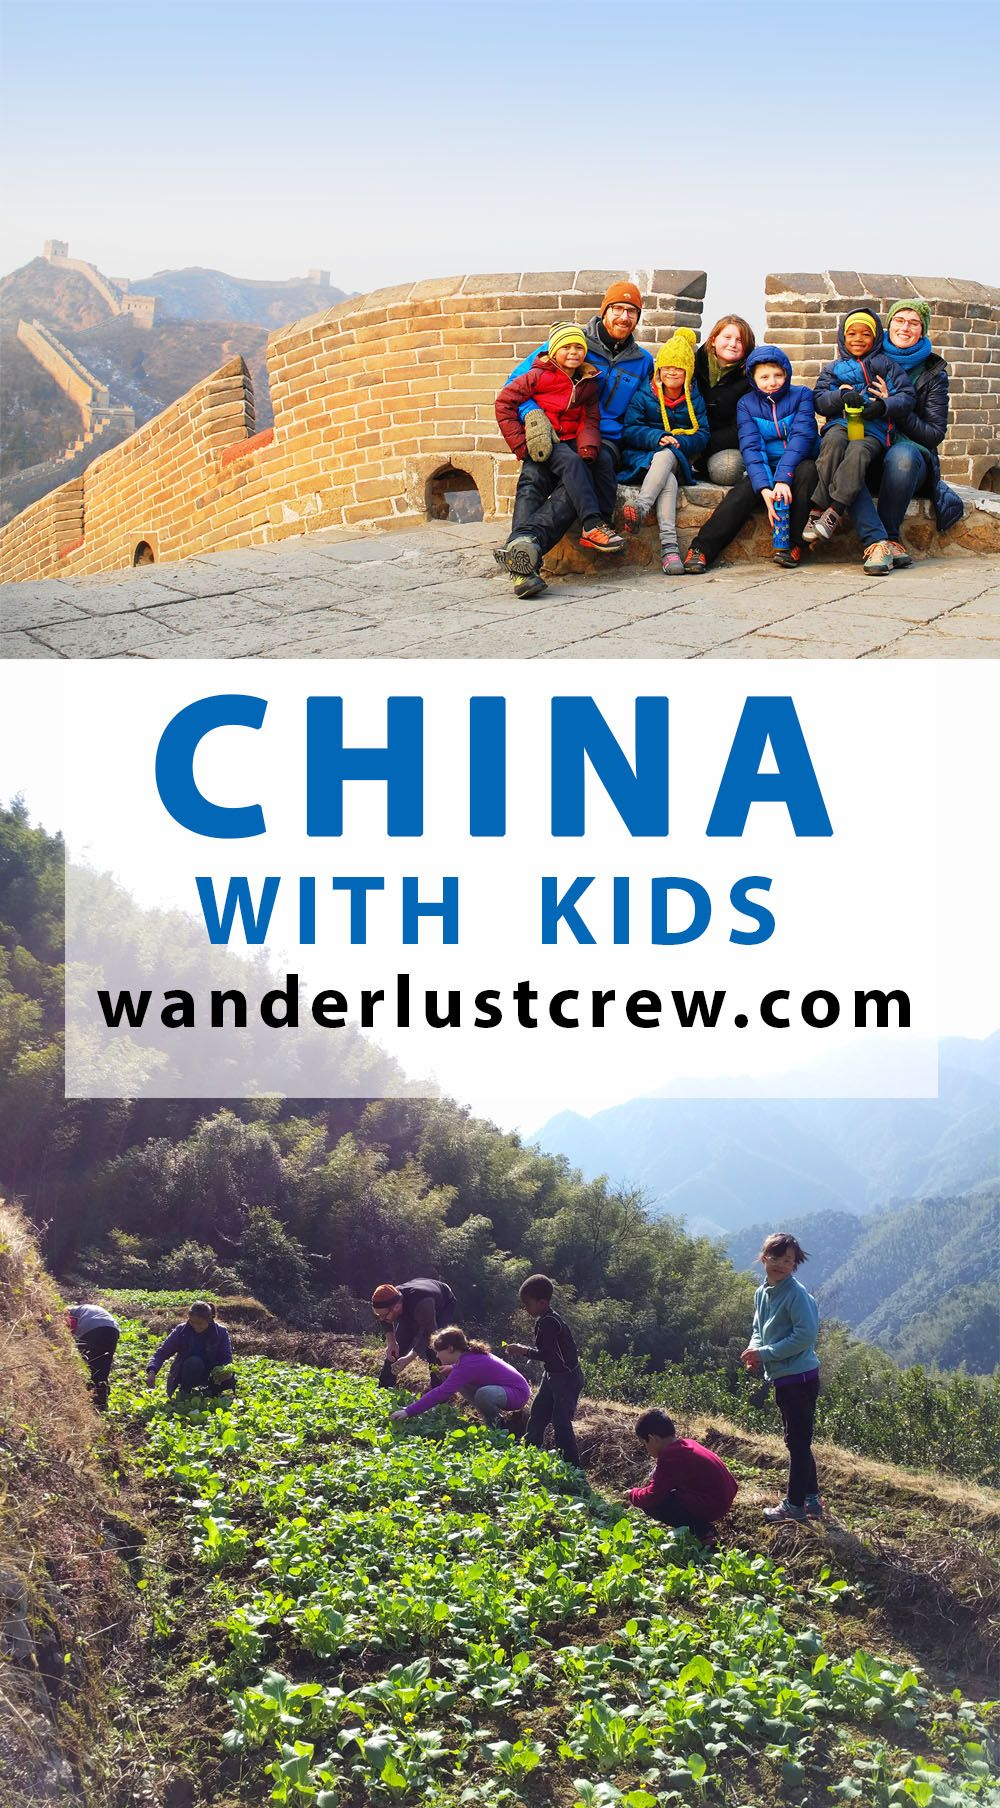 I'm so excited to have Andie from One Daring Adventure guest post on China today! It's somewhere I've longed to go my entire life! When Andie reached out I was…